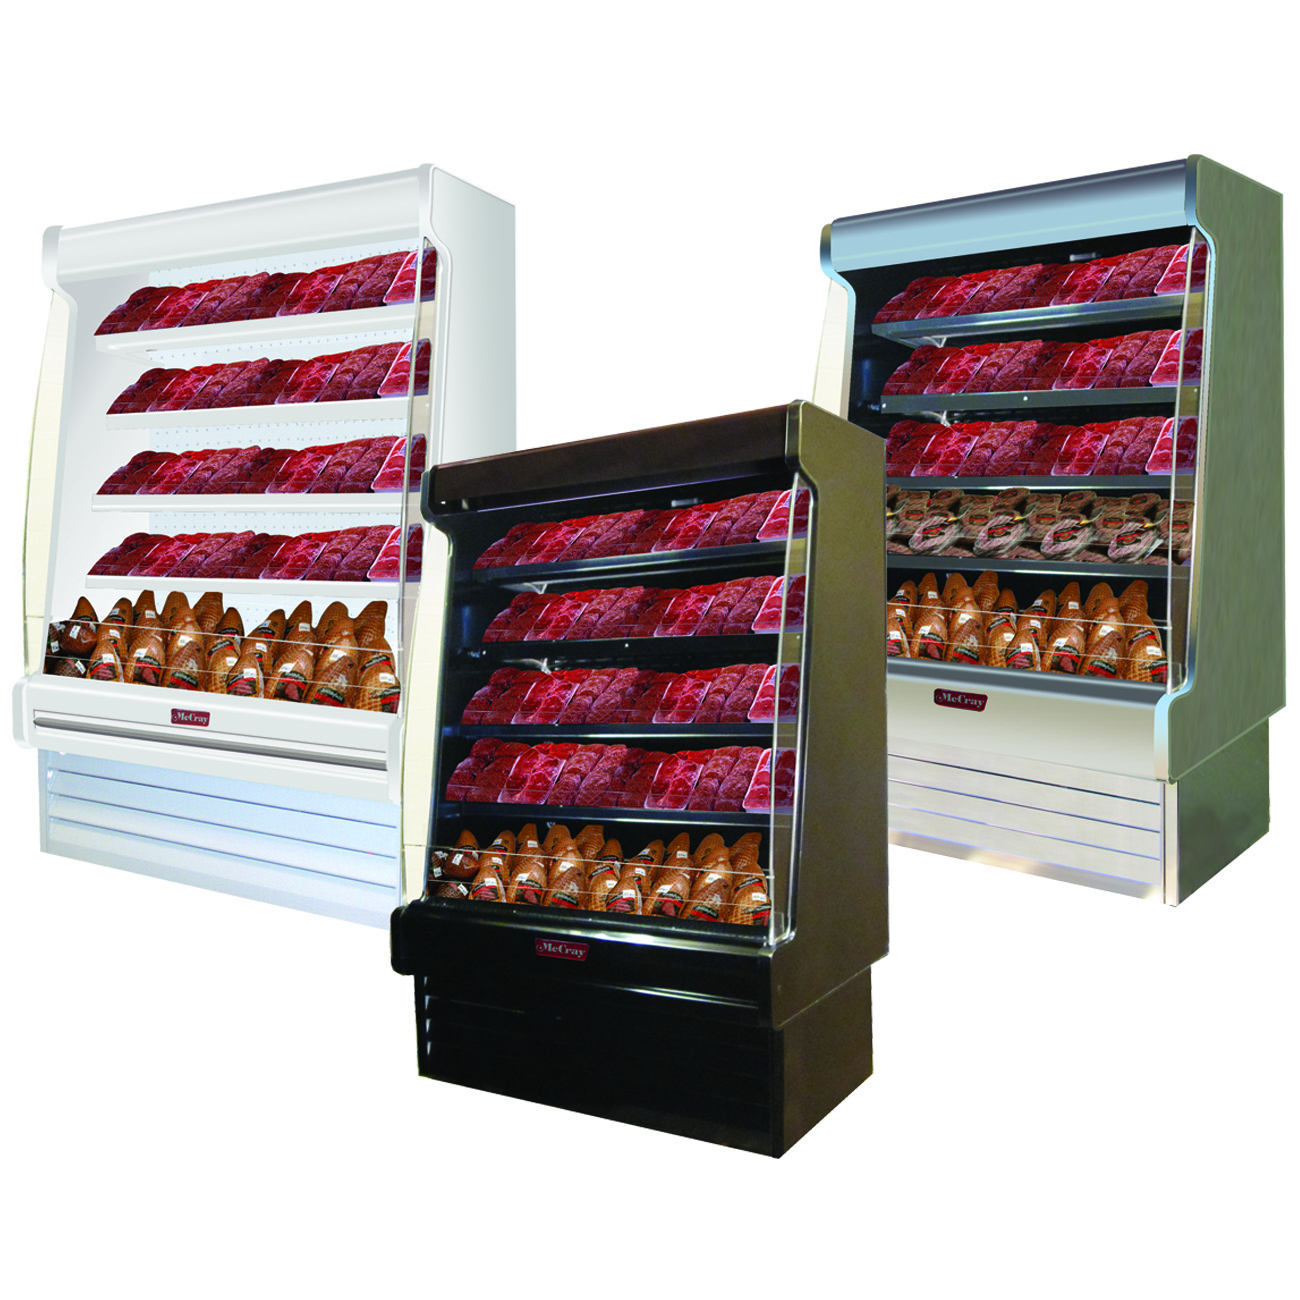 Howard-McCray SC-OM35E-5S-LED merchandiser, open refrigerated display